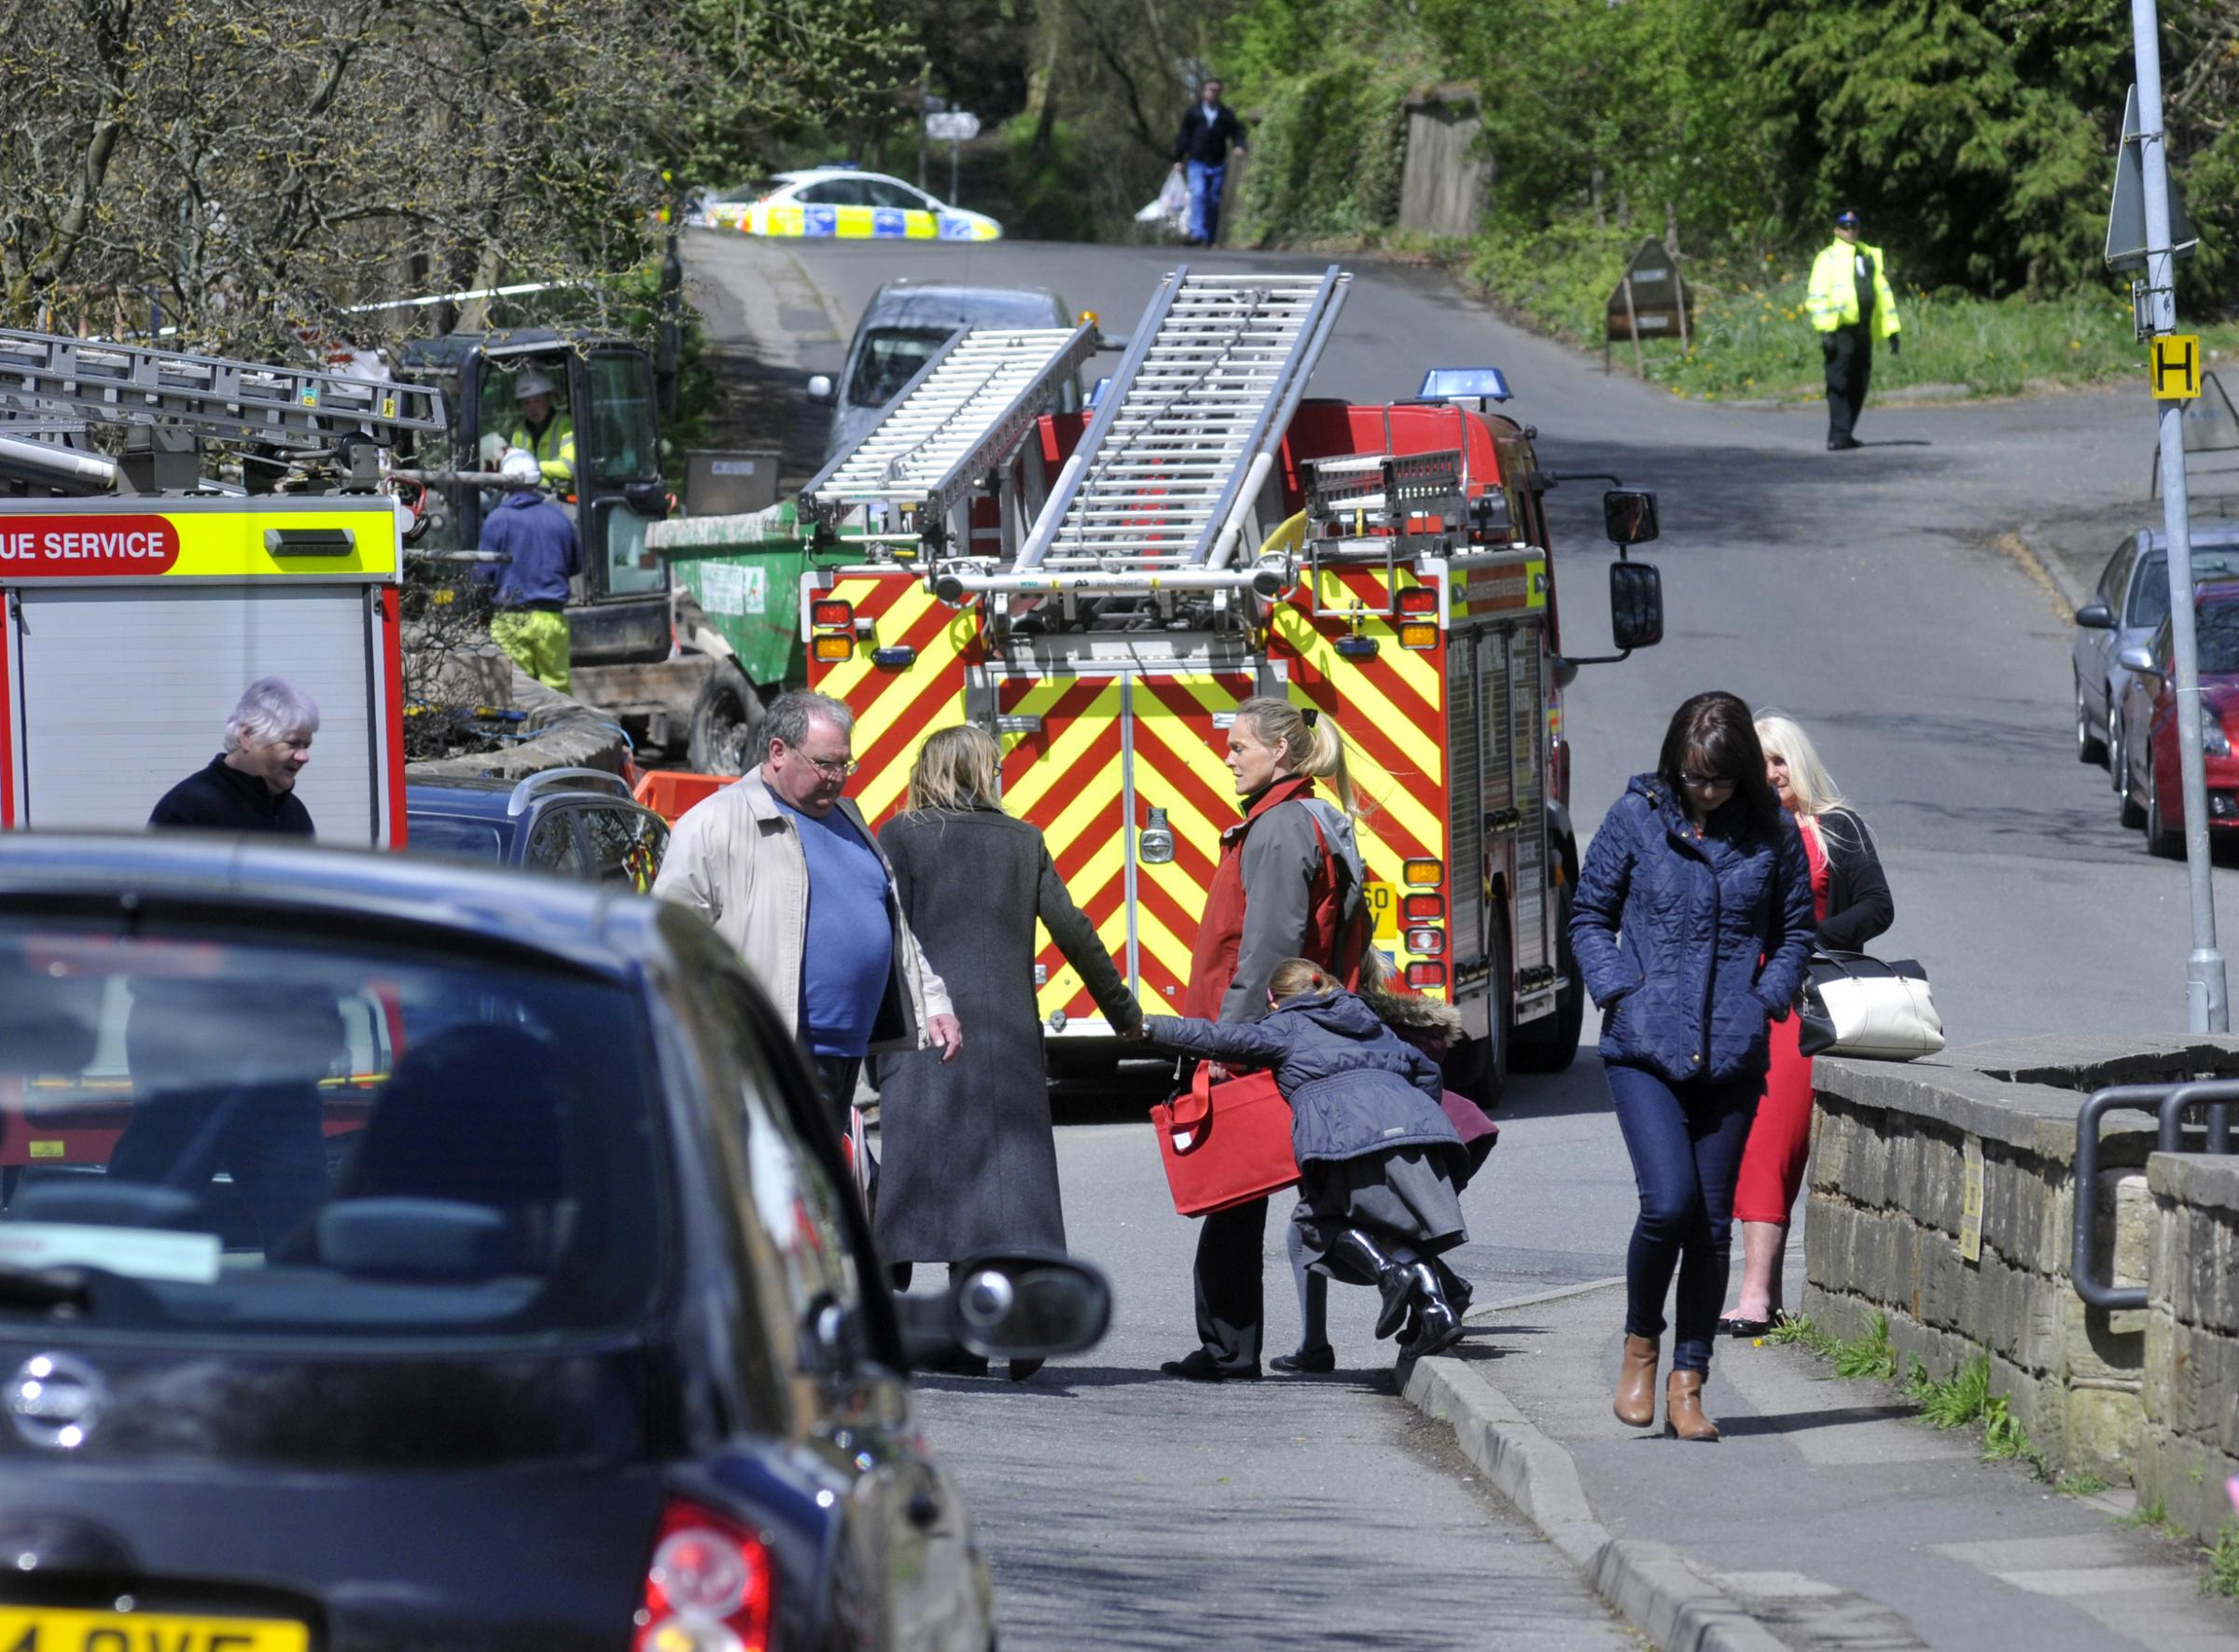 FIRE: The blaze at ITAC Limited, Stoneclough. Pupils from St Saviours were collected by parents